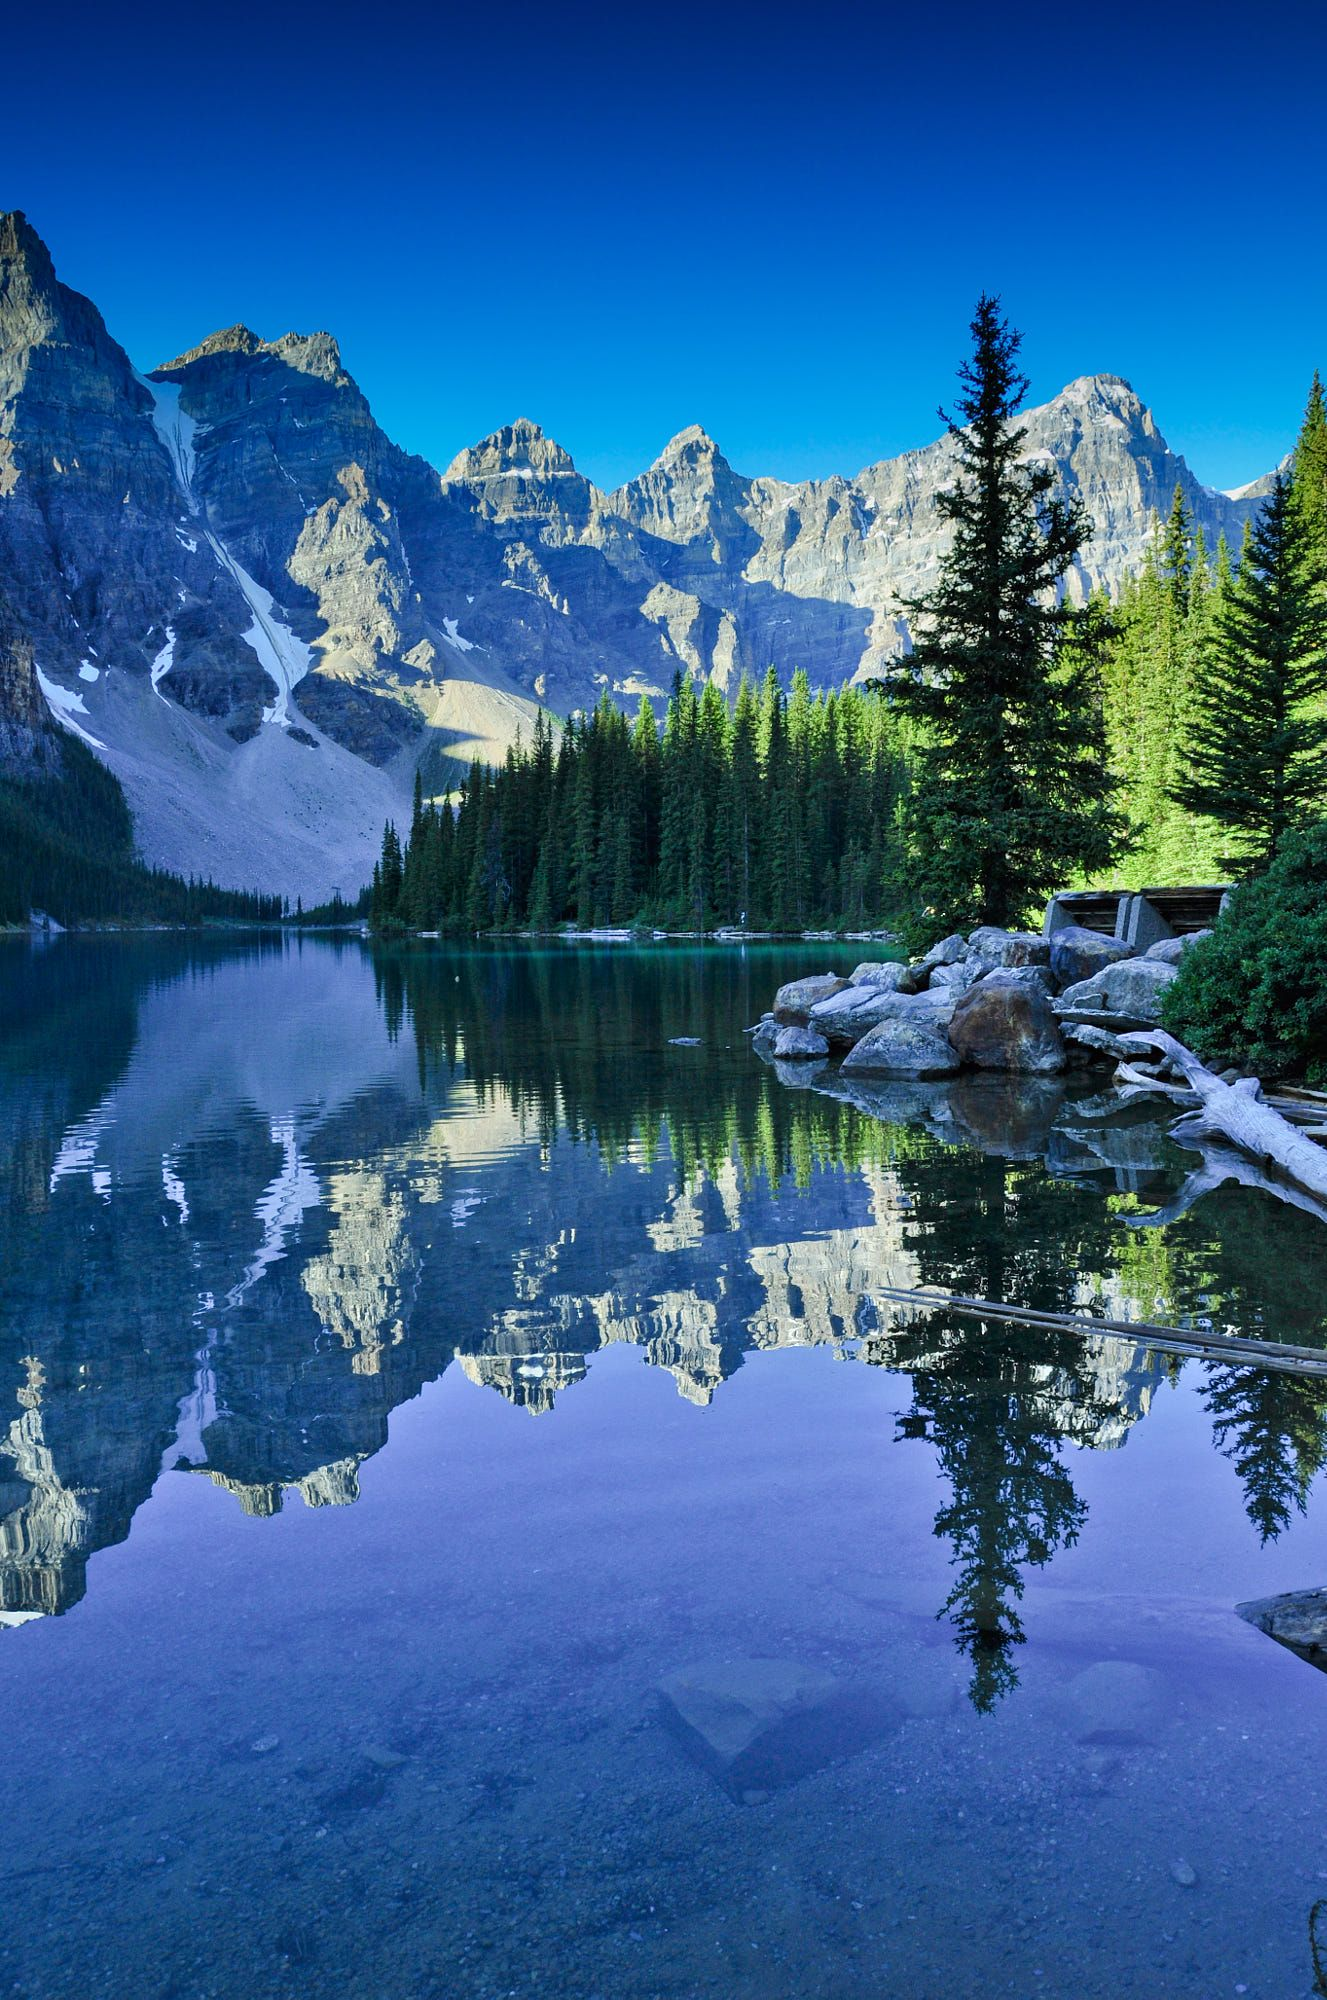 Photo of Morning at Moraine Lake by Peter Drevenka / 500px